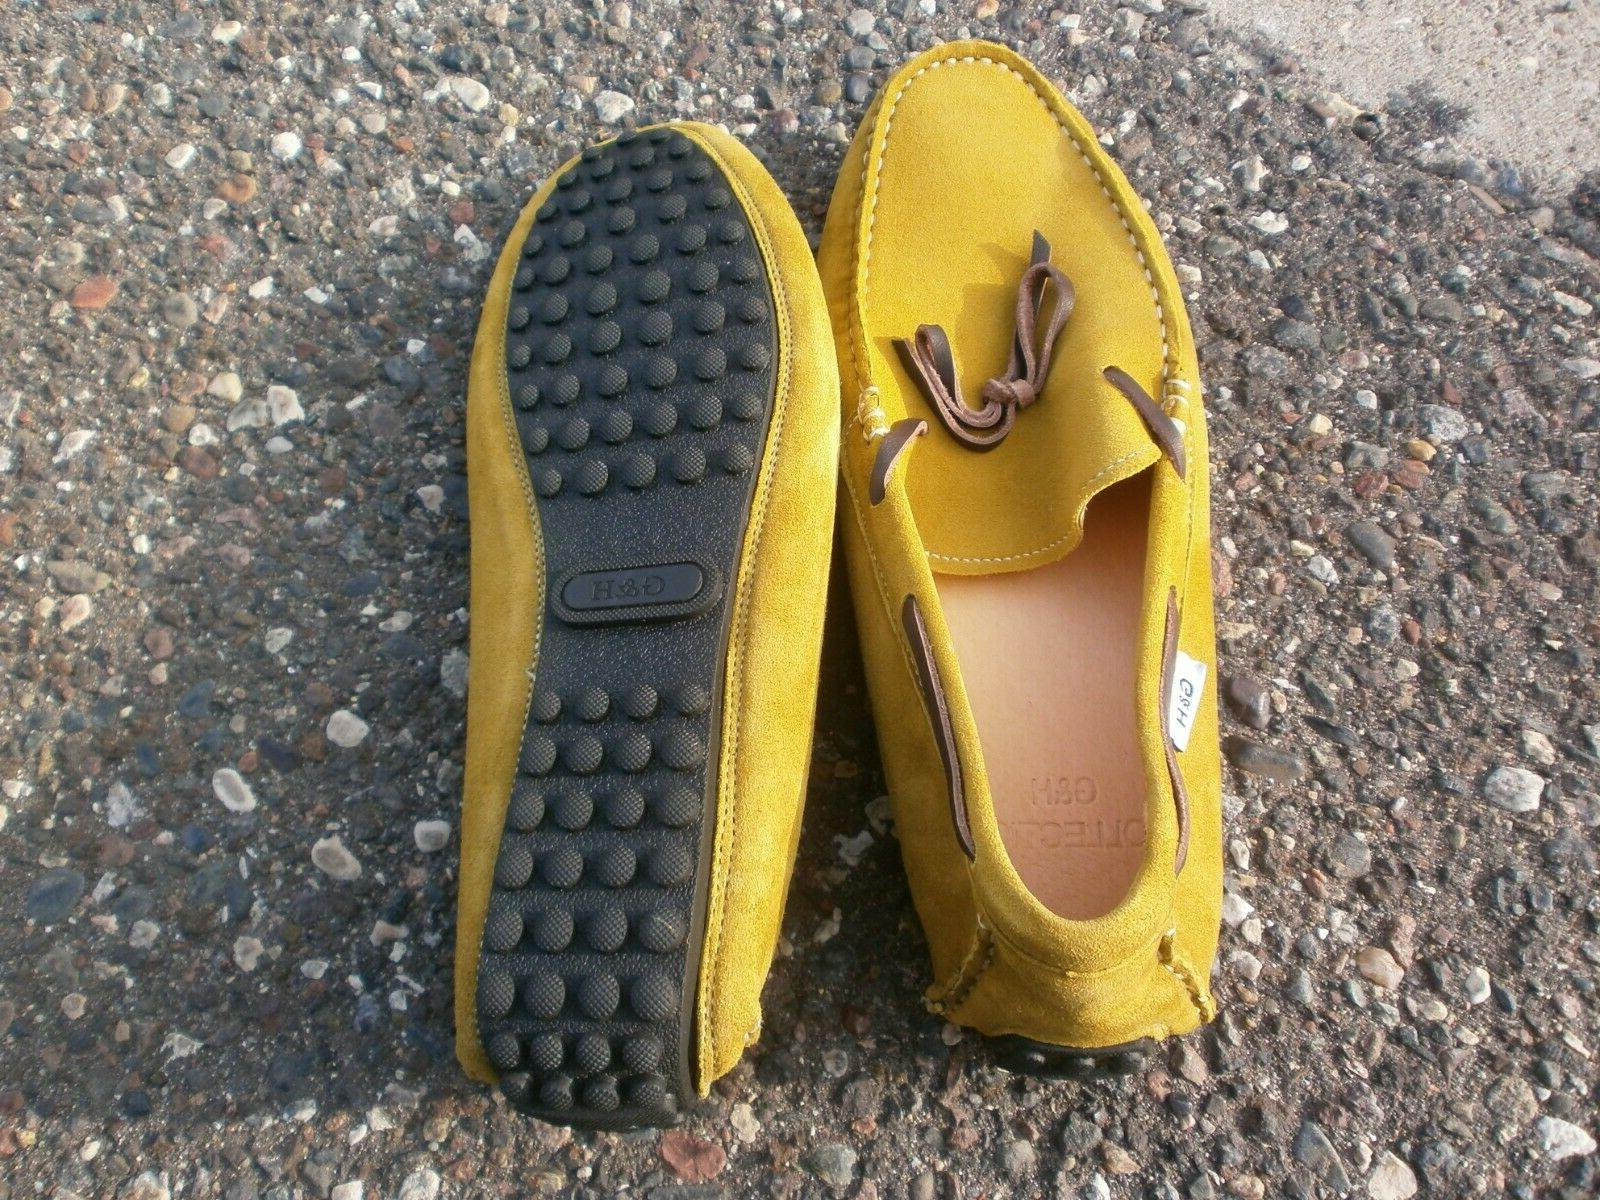 New Moccasins Shoes Leather Comfortable